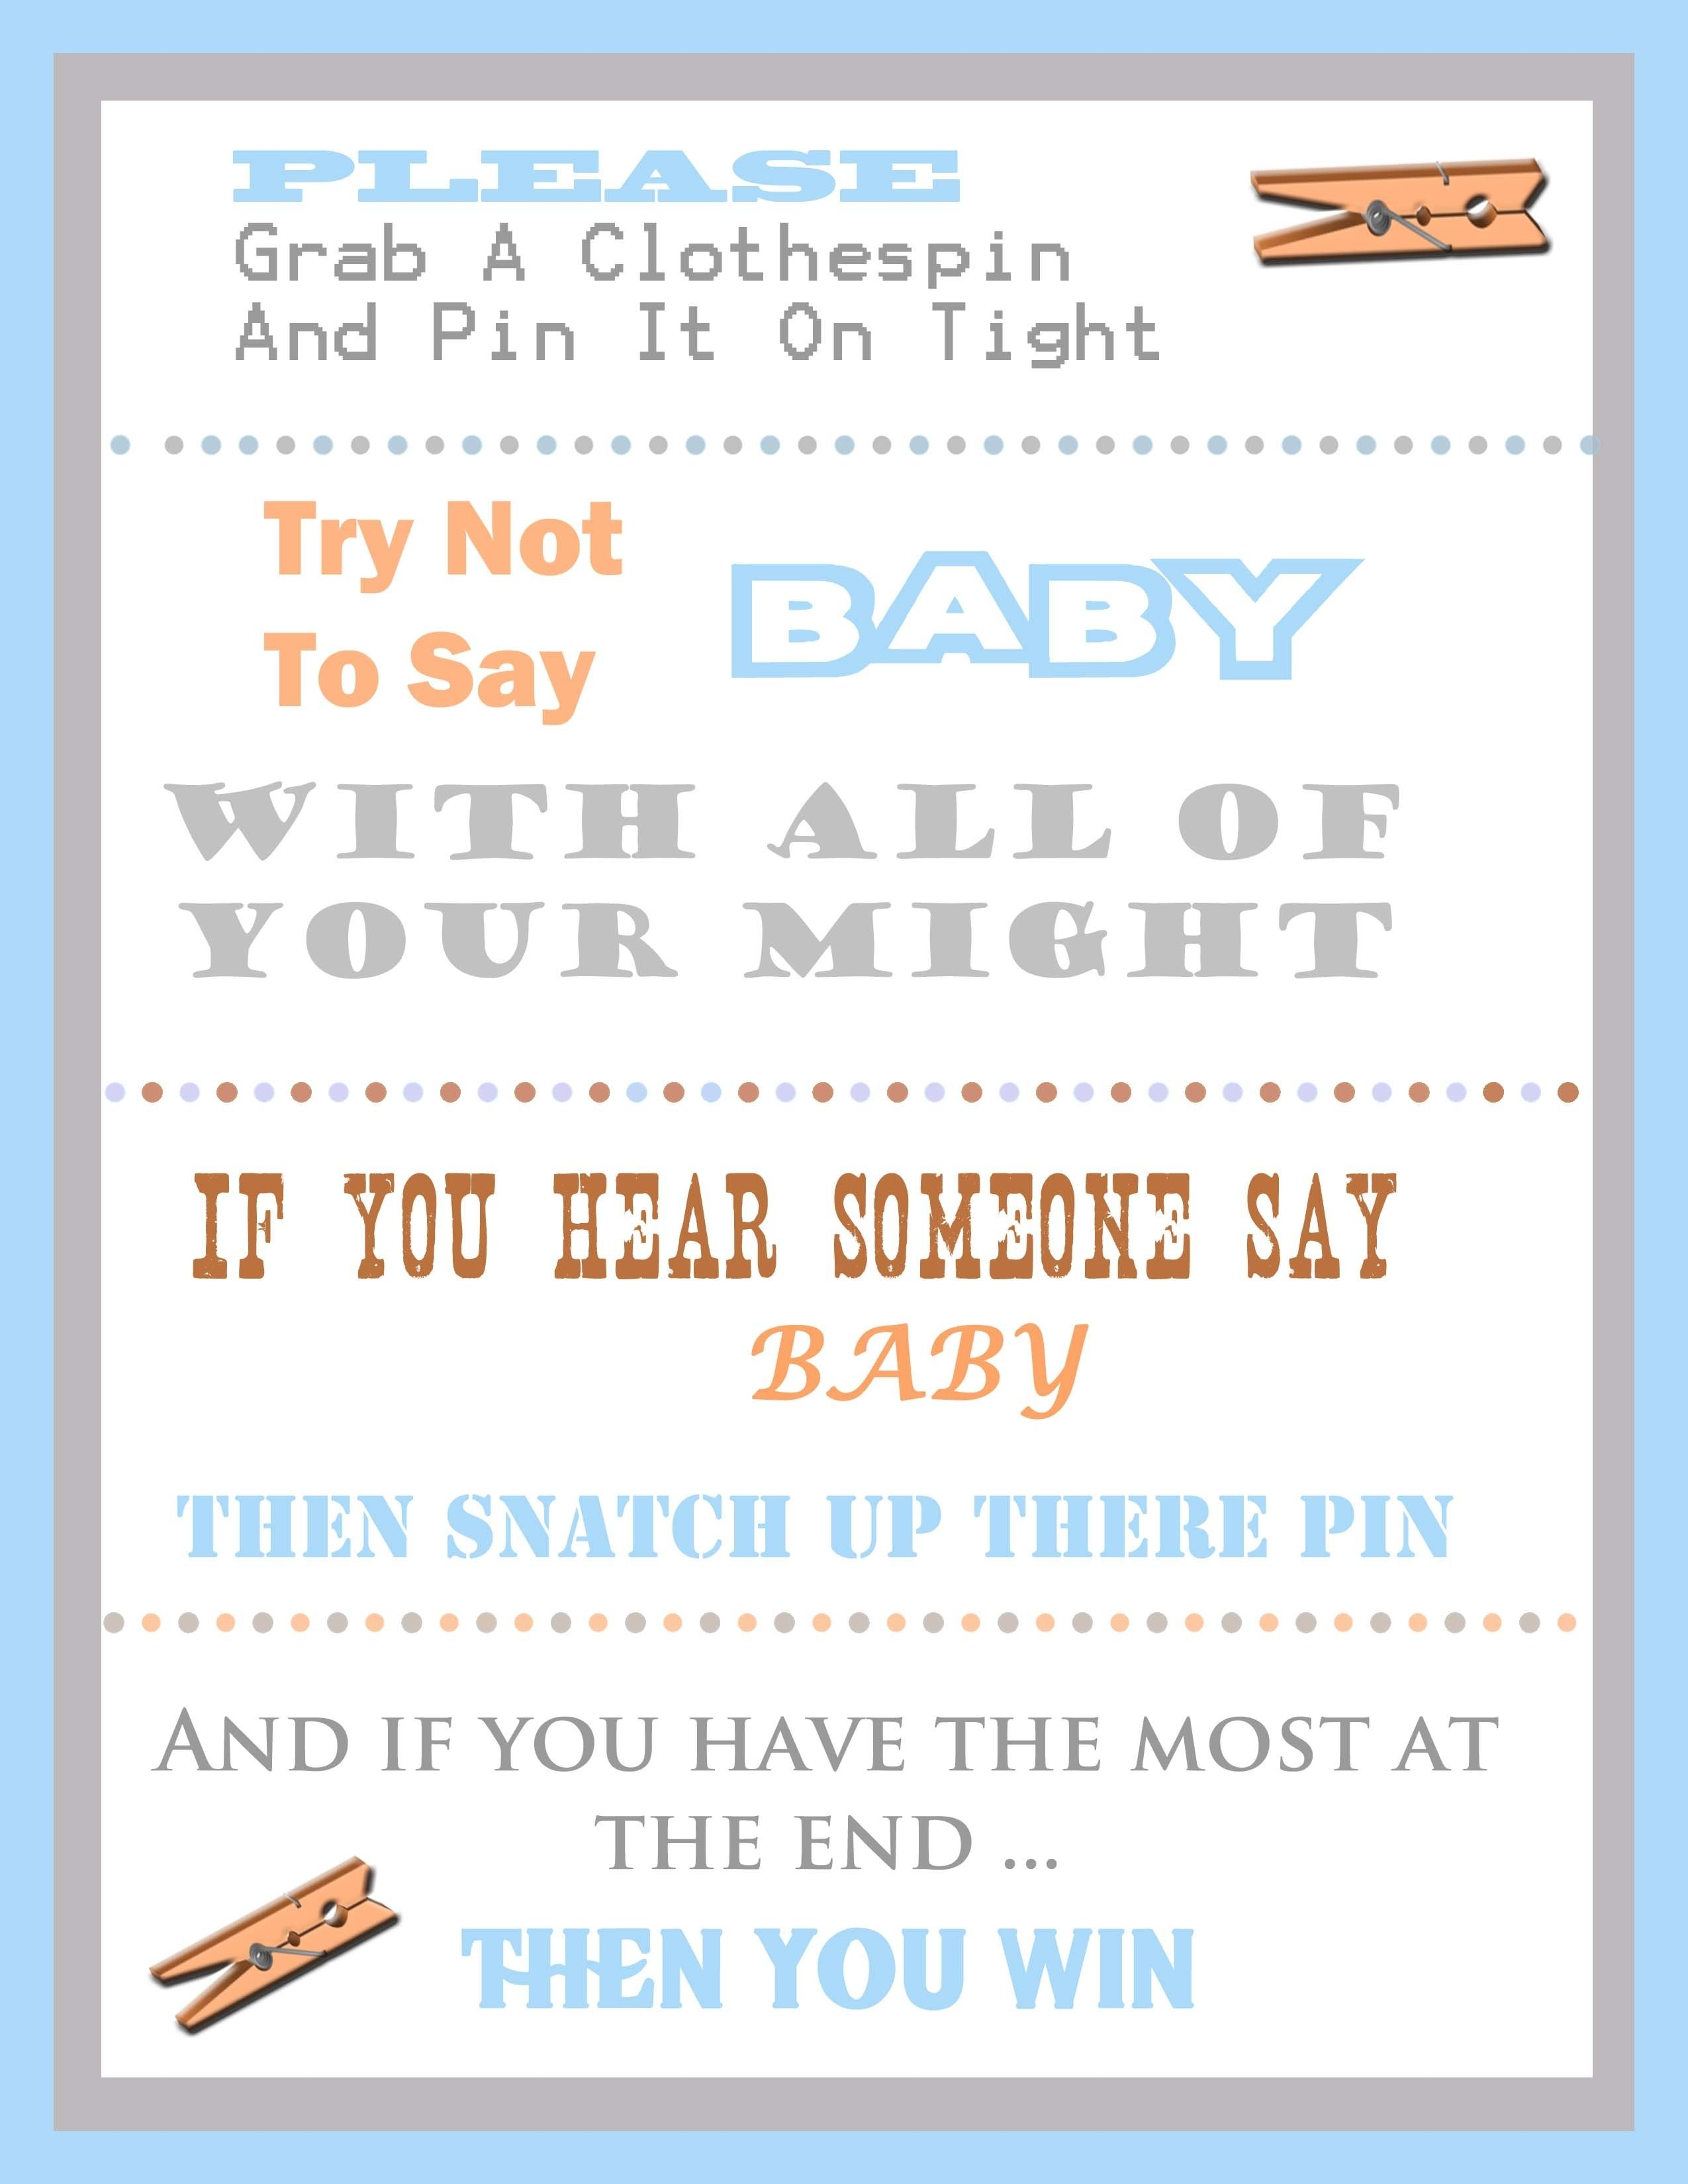 10 Stylish Free Baby Shower Games Ideas free baby shower games printables wedding 2 2020